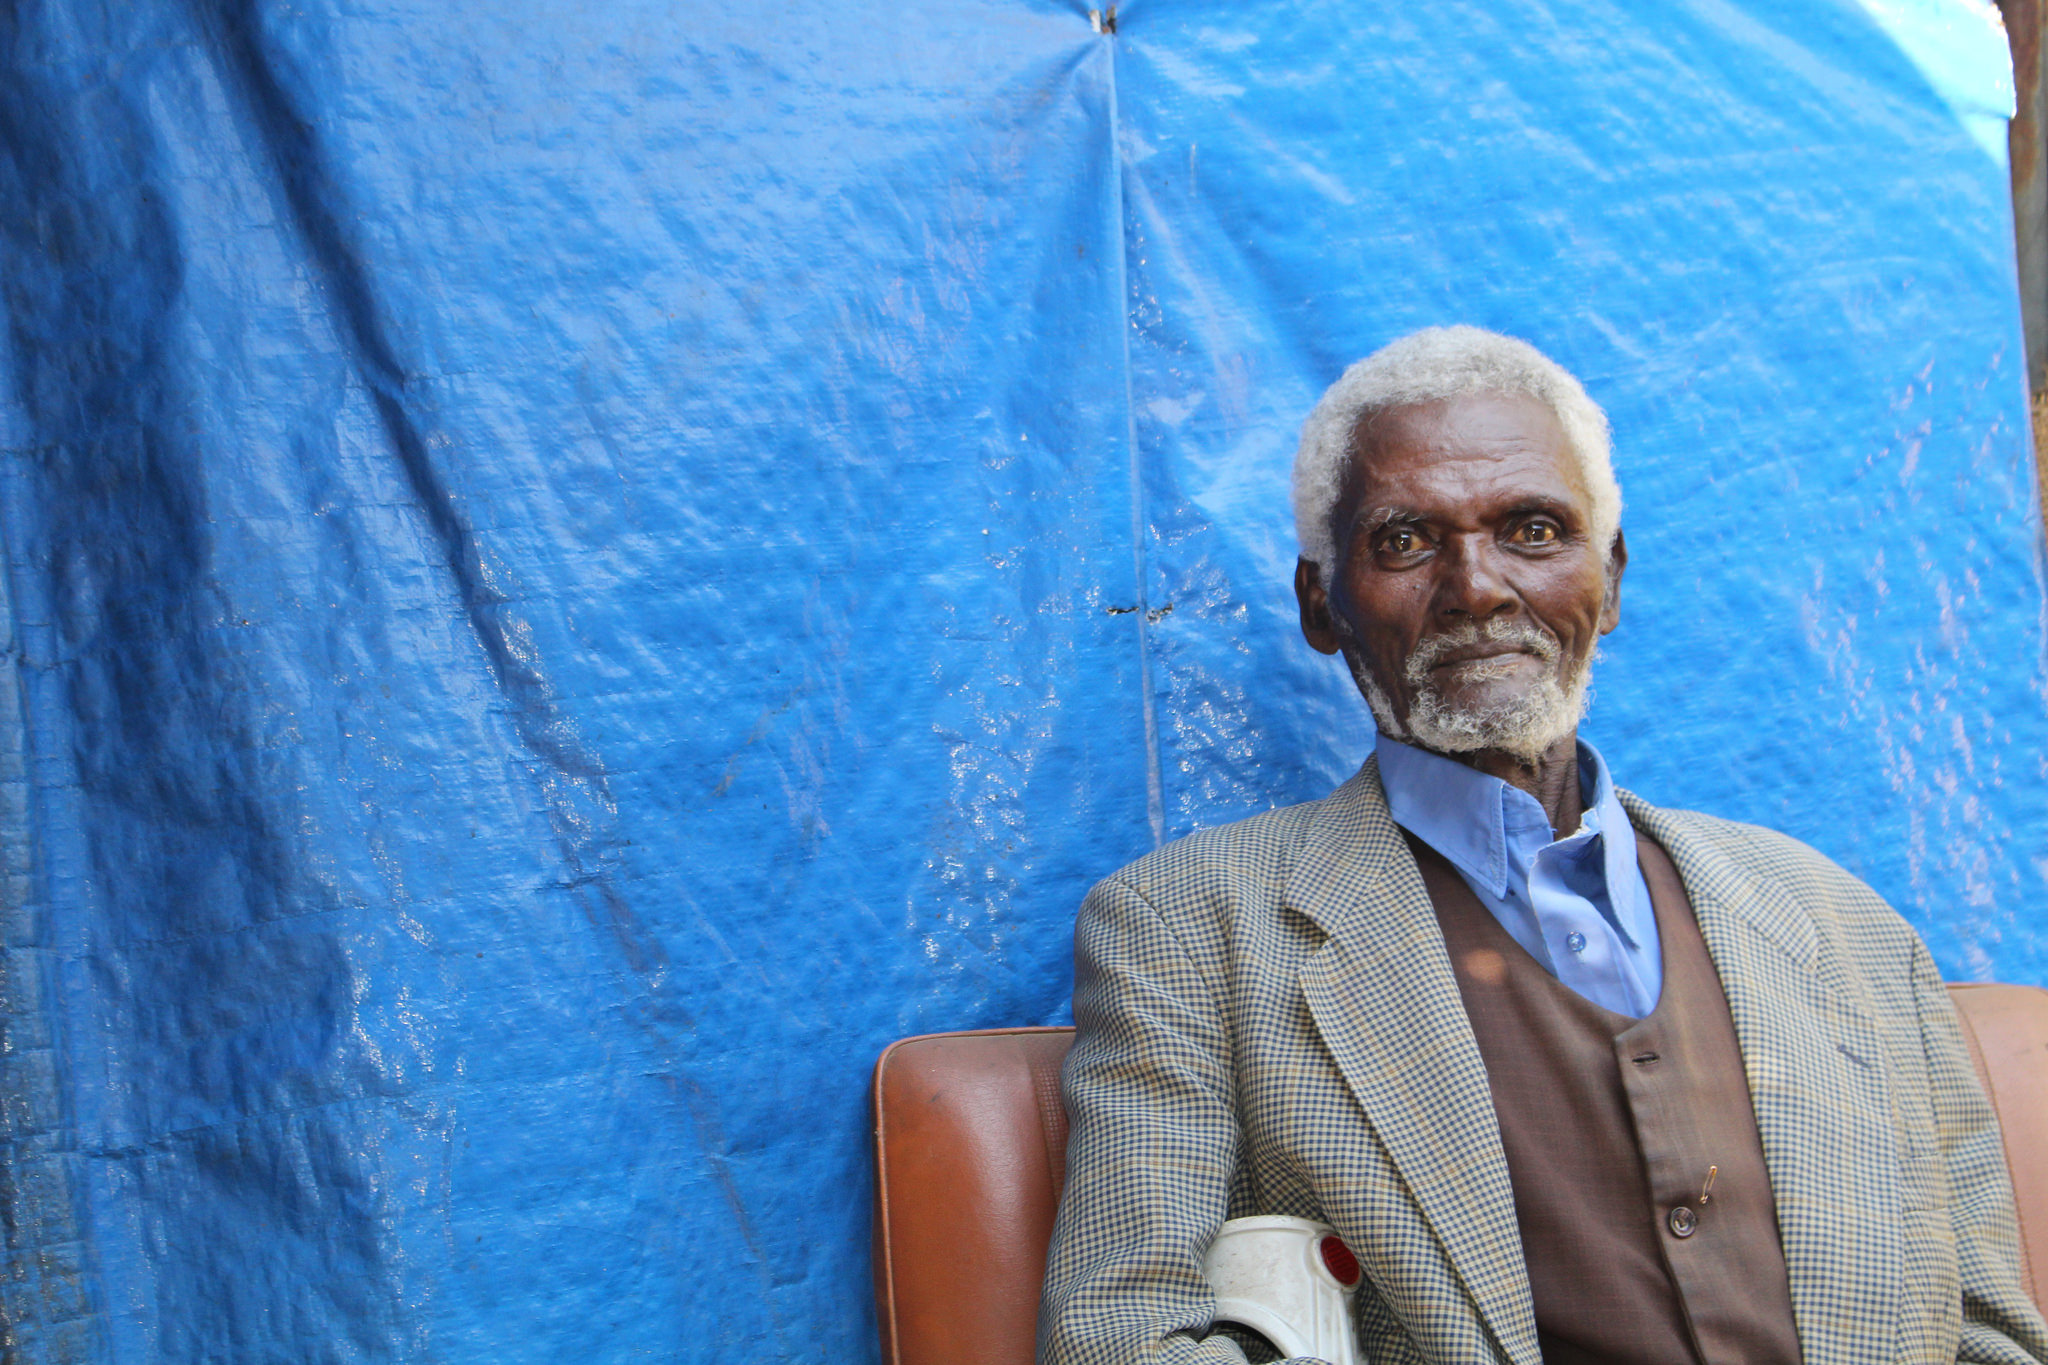 Fikru, a former long-distance driver from Ethiopia, receives daily visits from a volunteer home carer through Tesfa Social and Development Association (c) Lydia Humphrey/Age International